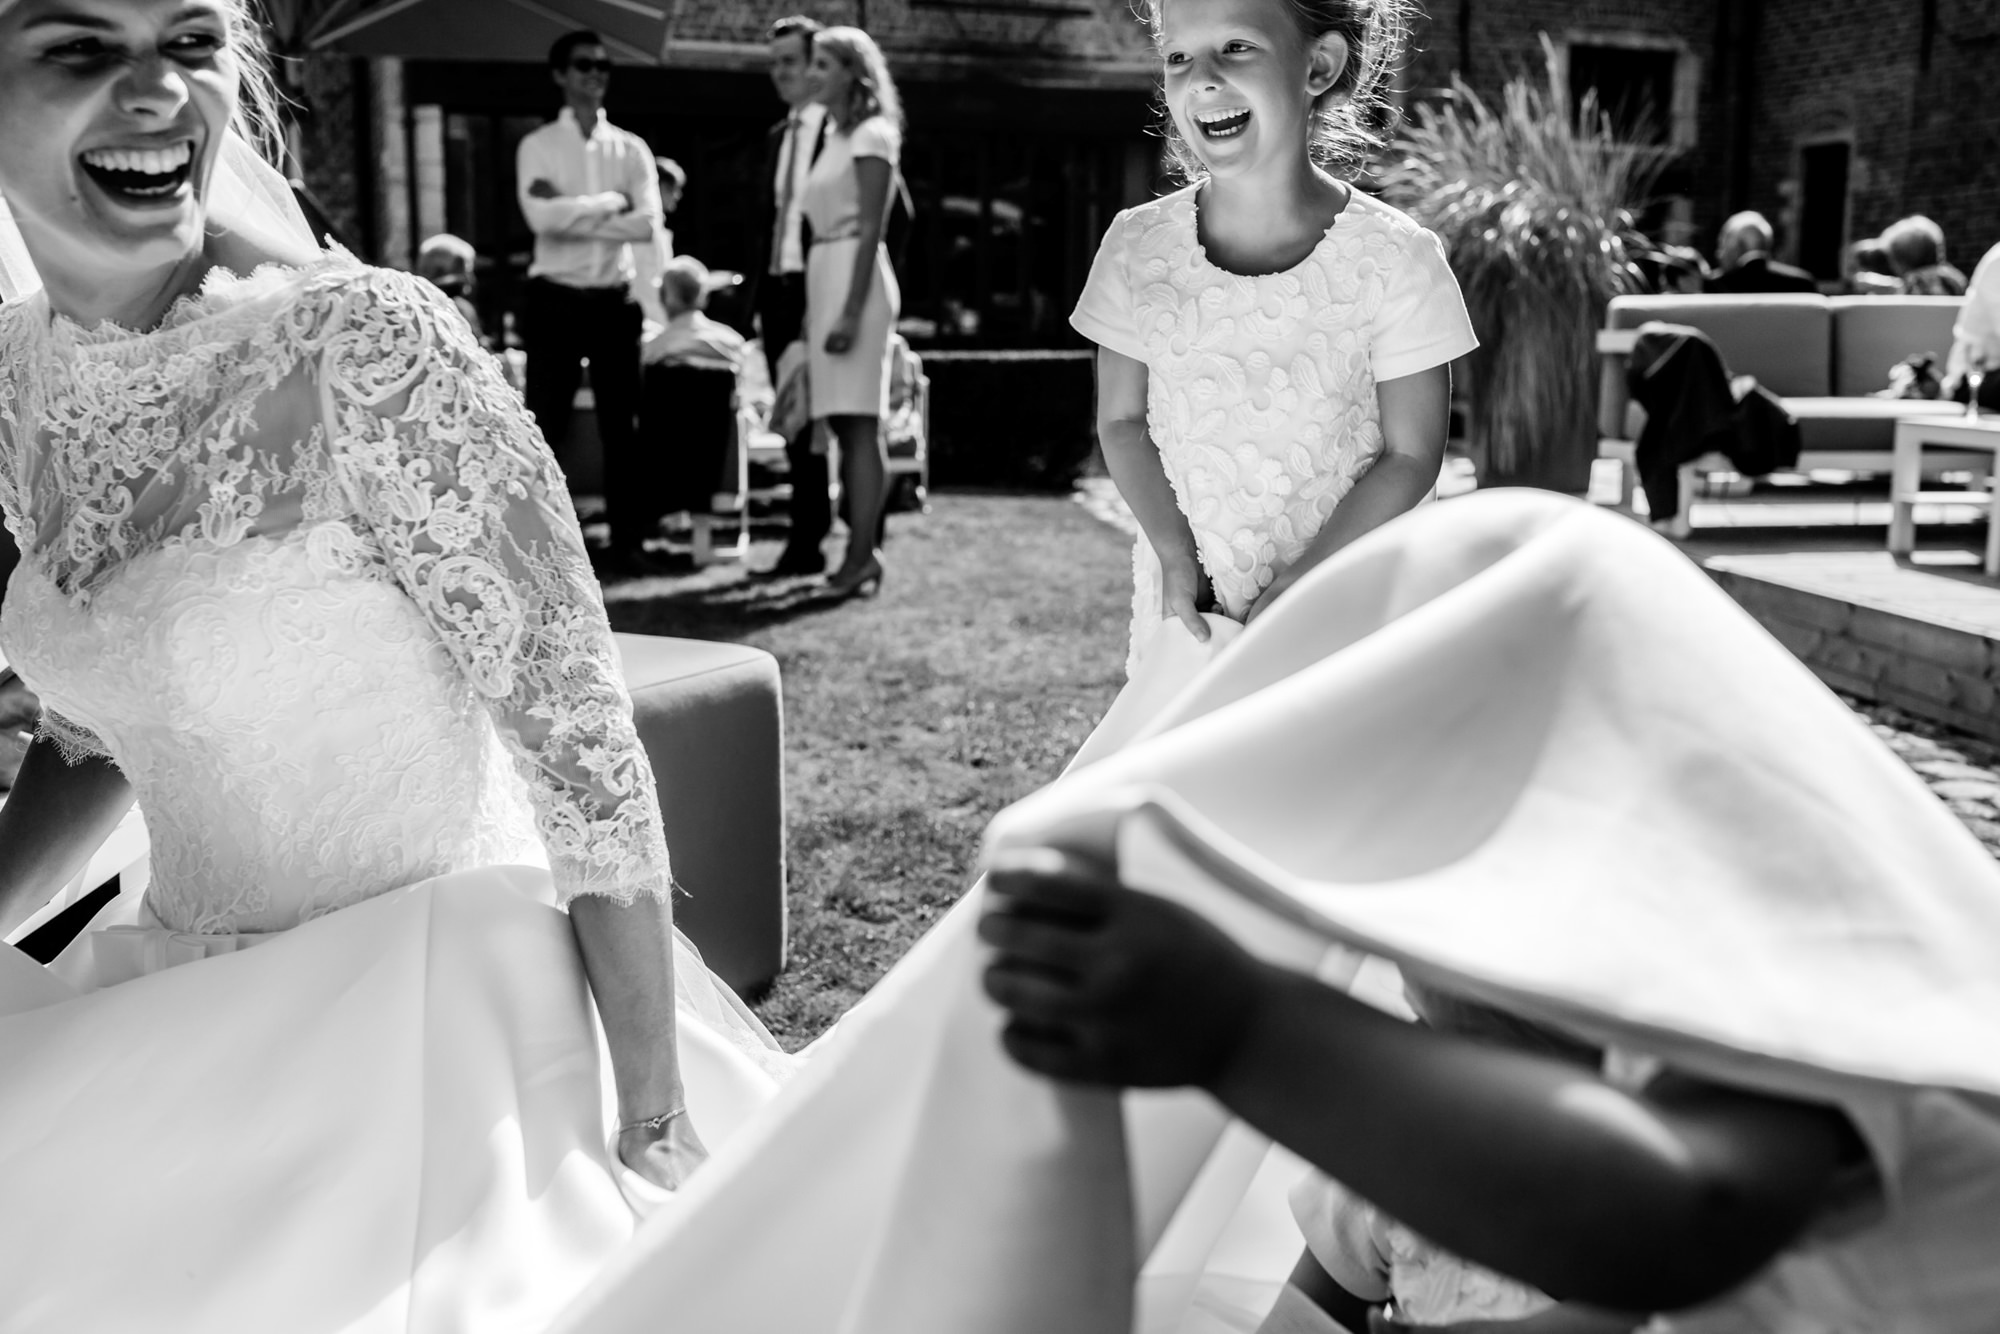 kids playing under laughing brides dress - photo by Phillipe Swiggers